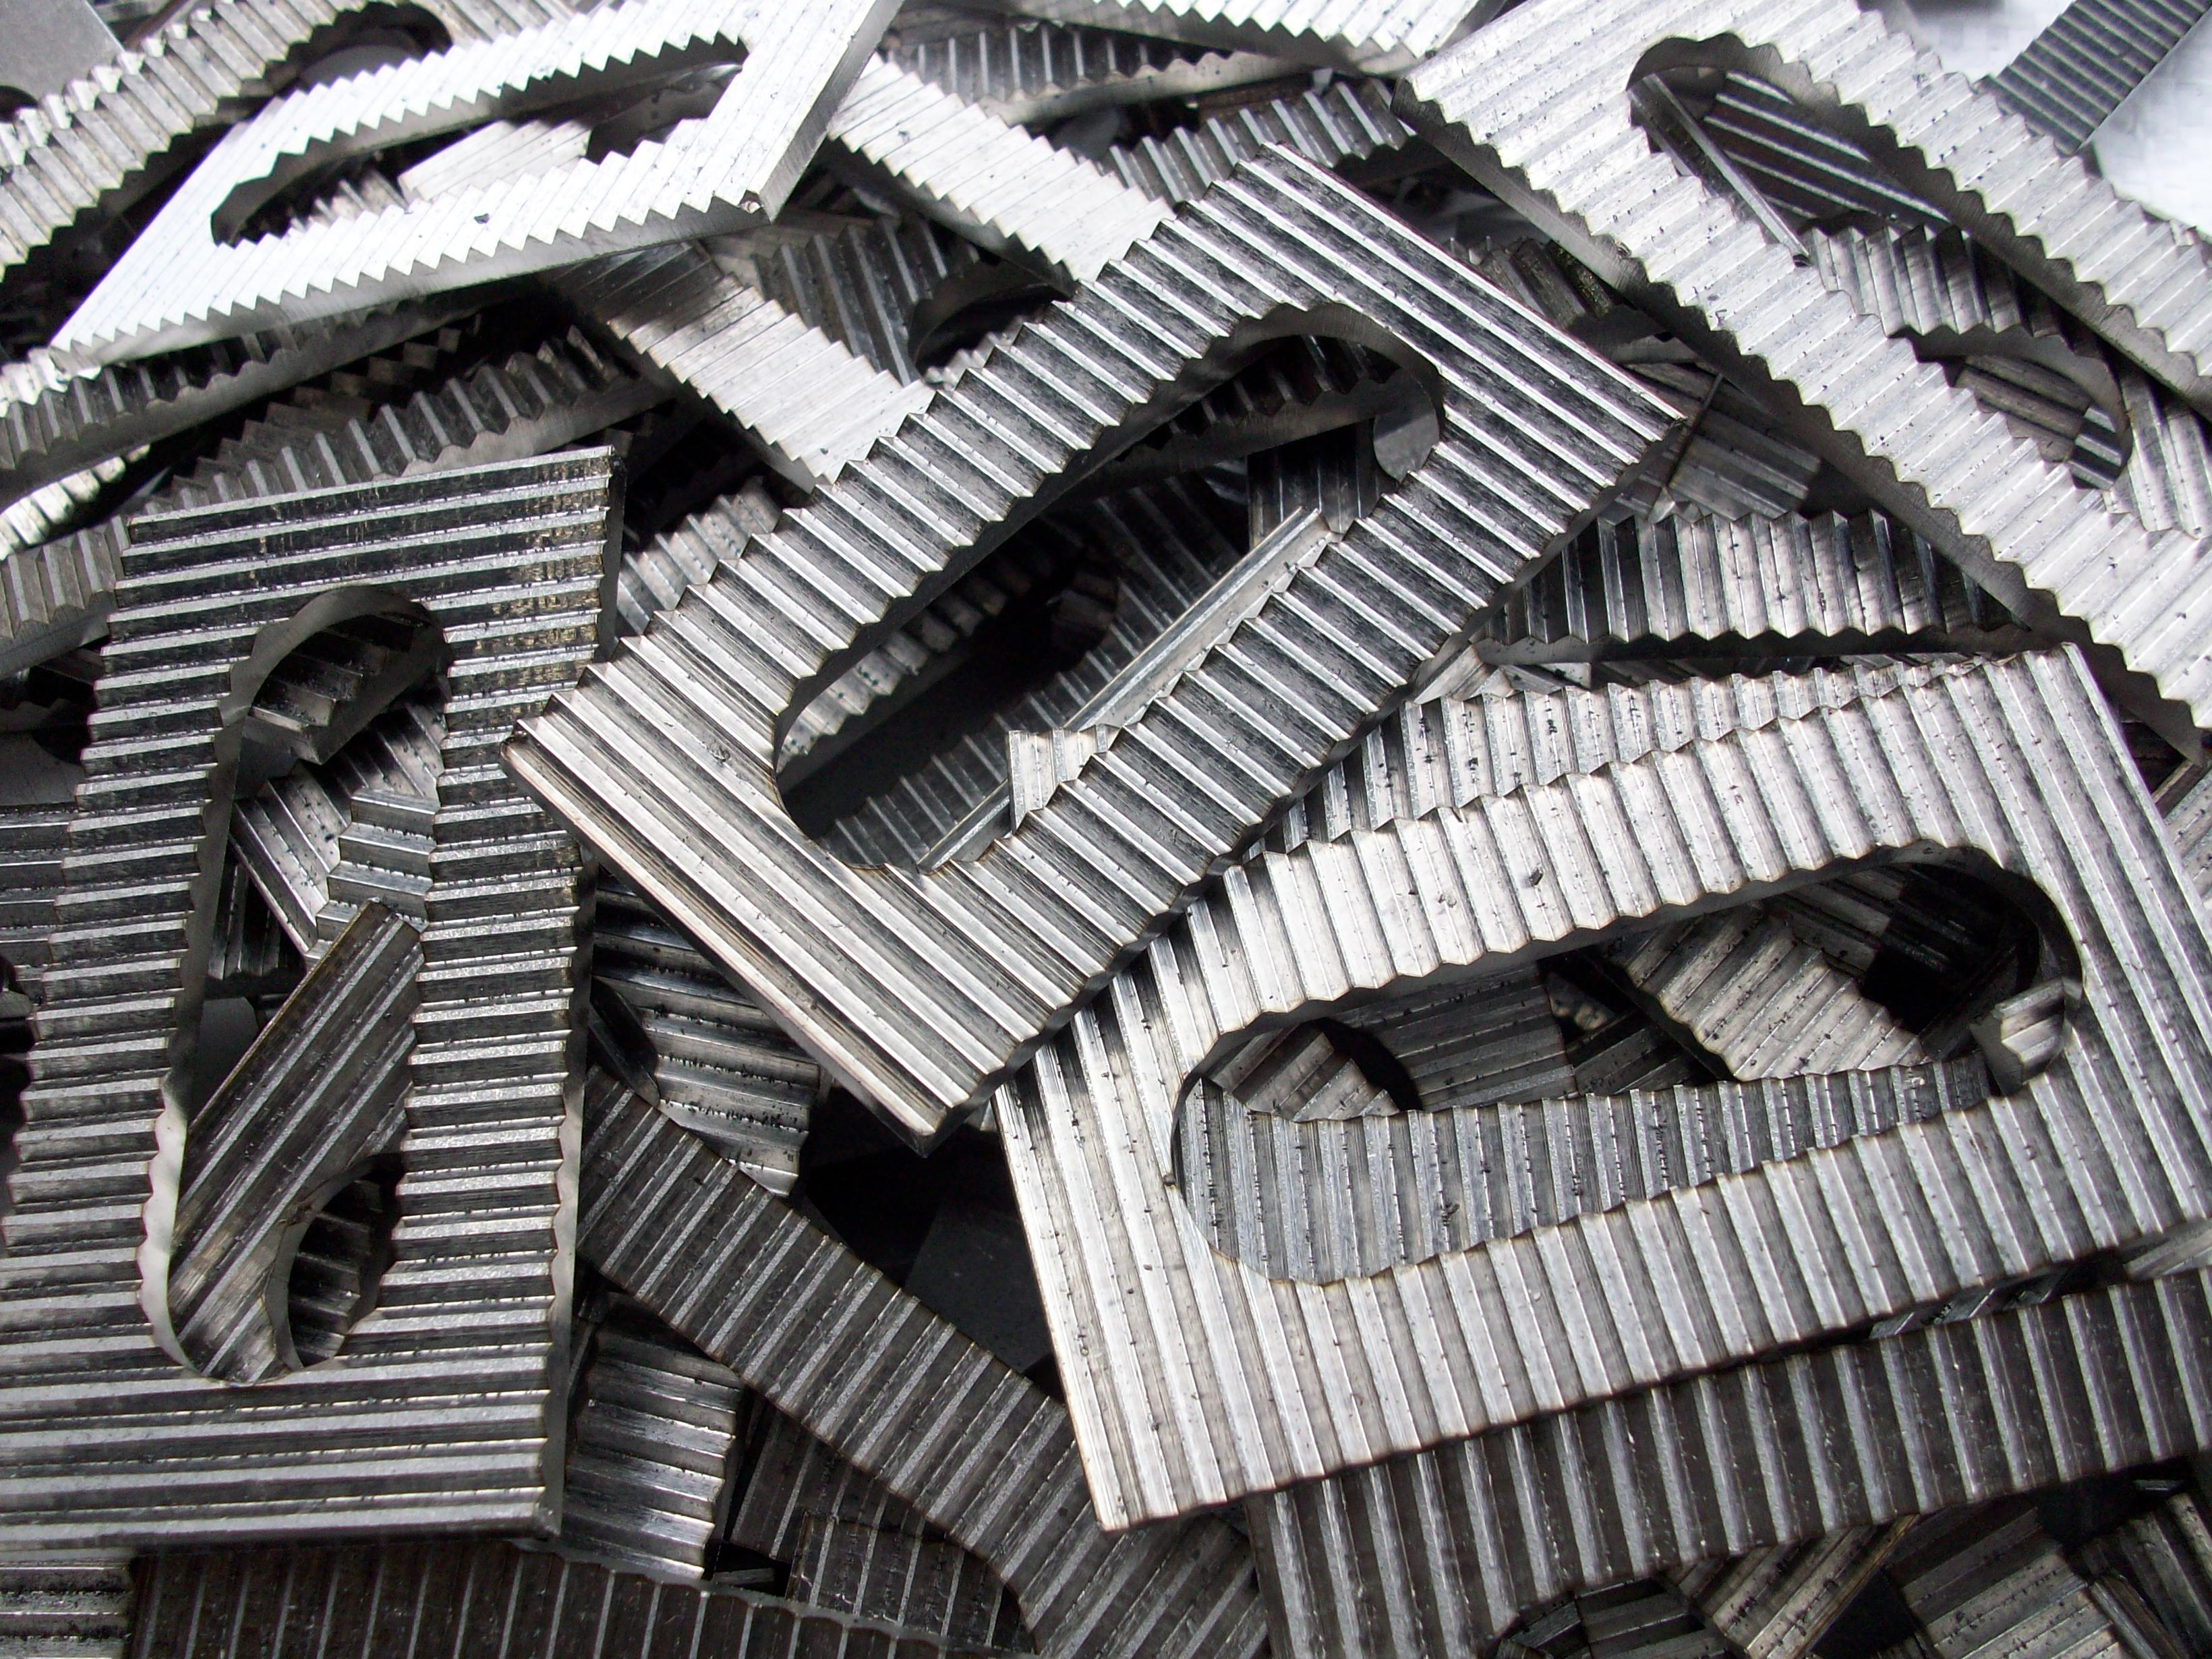 Stainless steel serrated pads